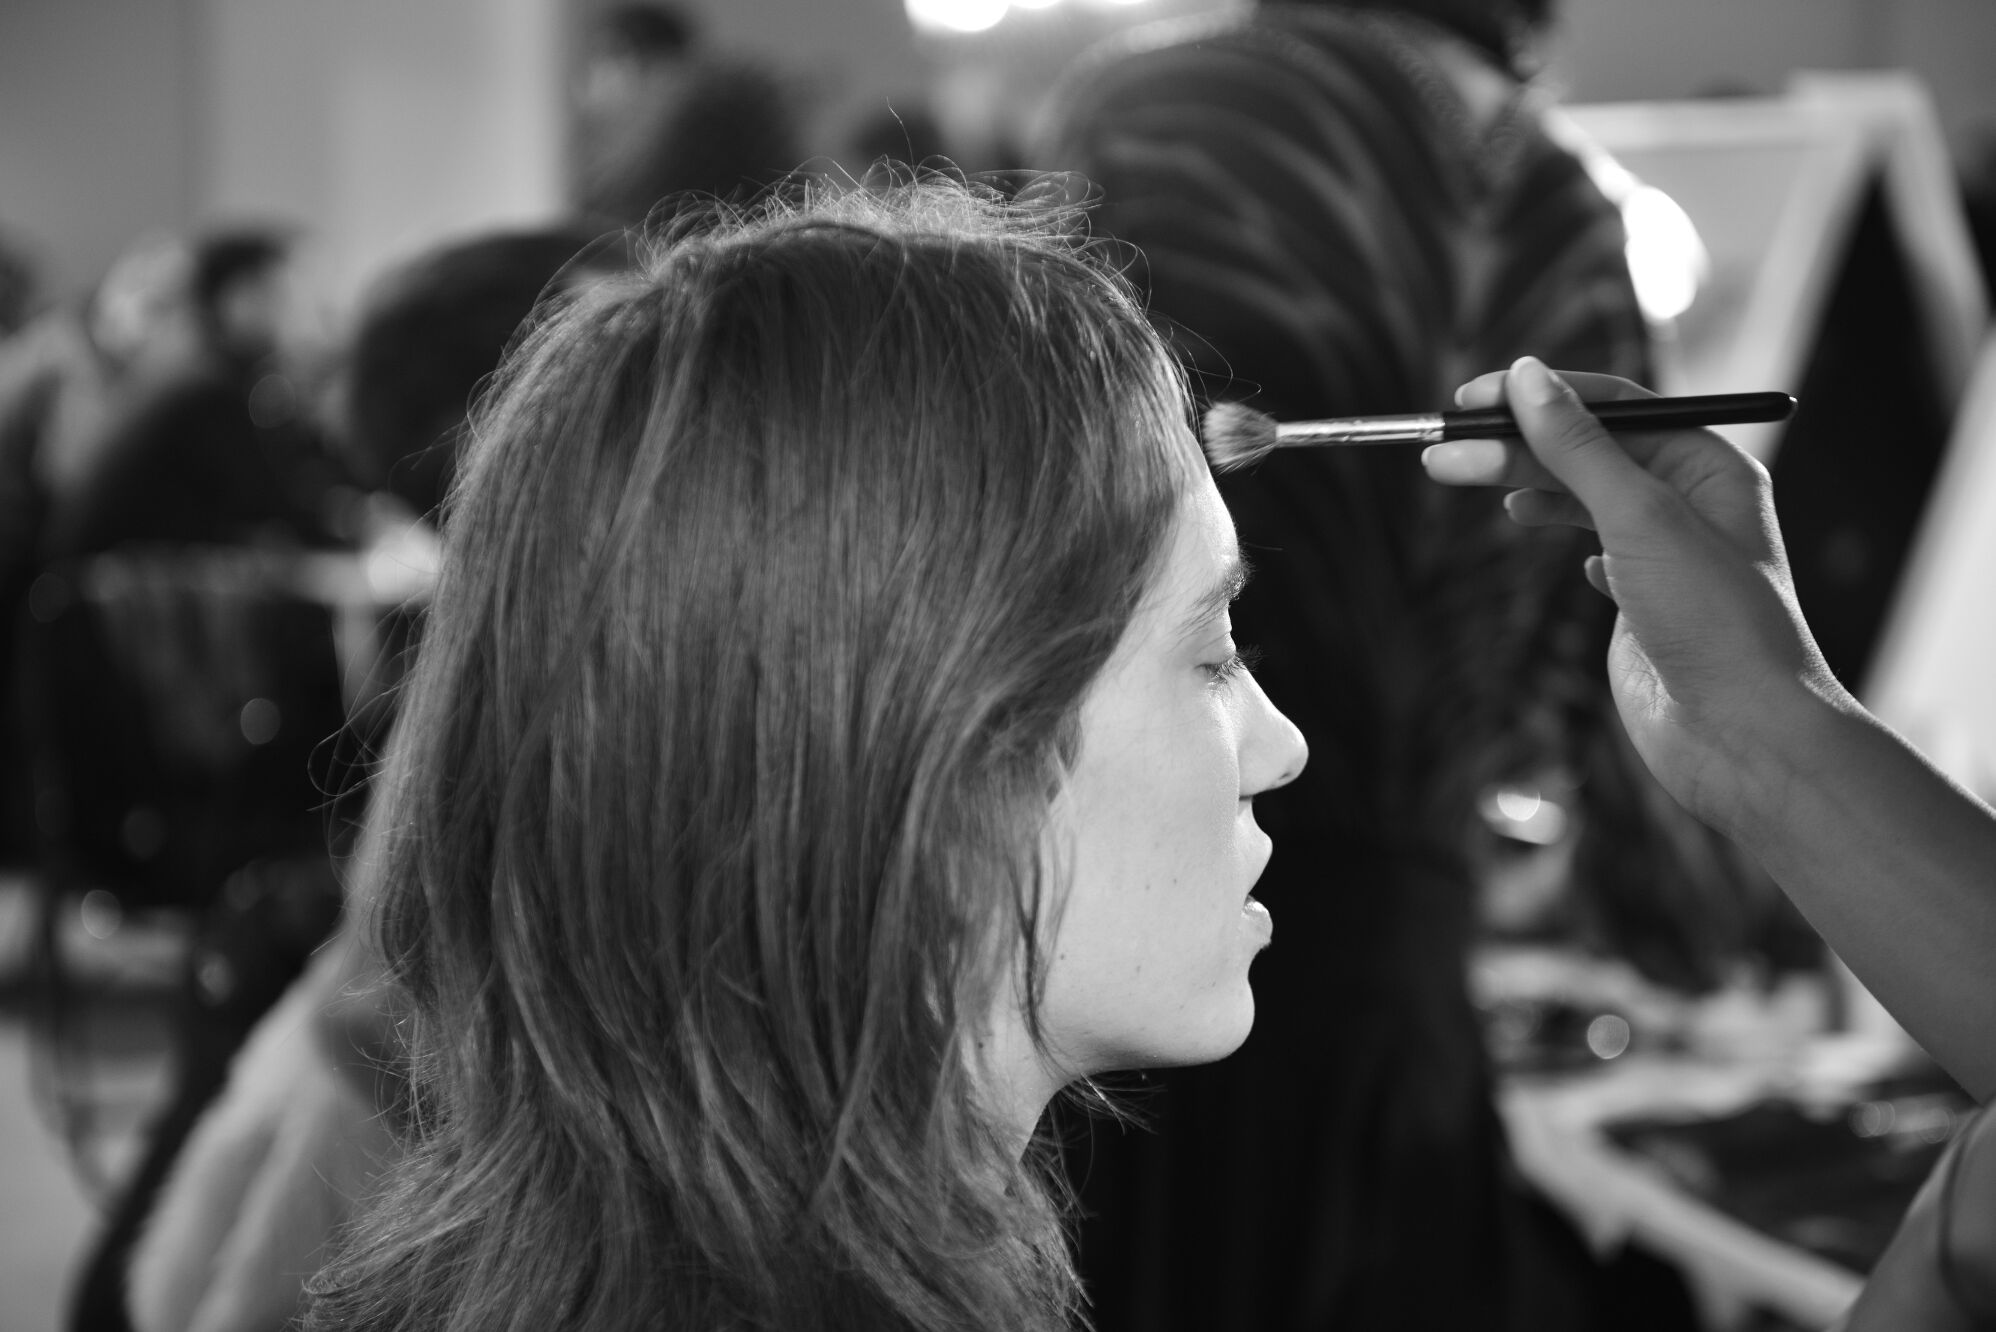 Backstage Diesel Black Gold Fall Winter 2015 Make Up